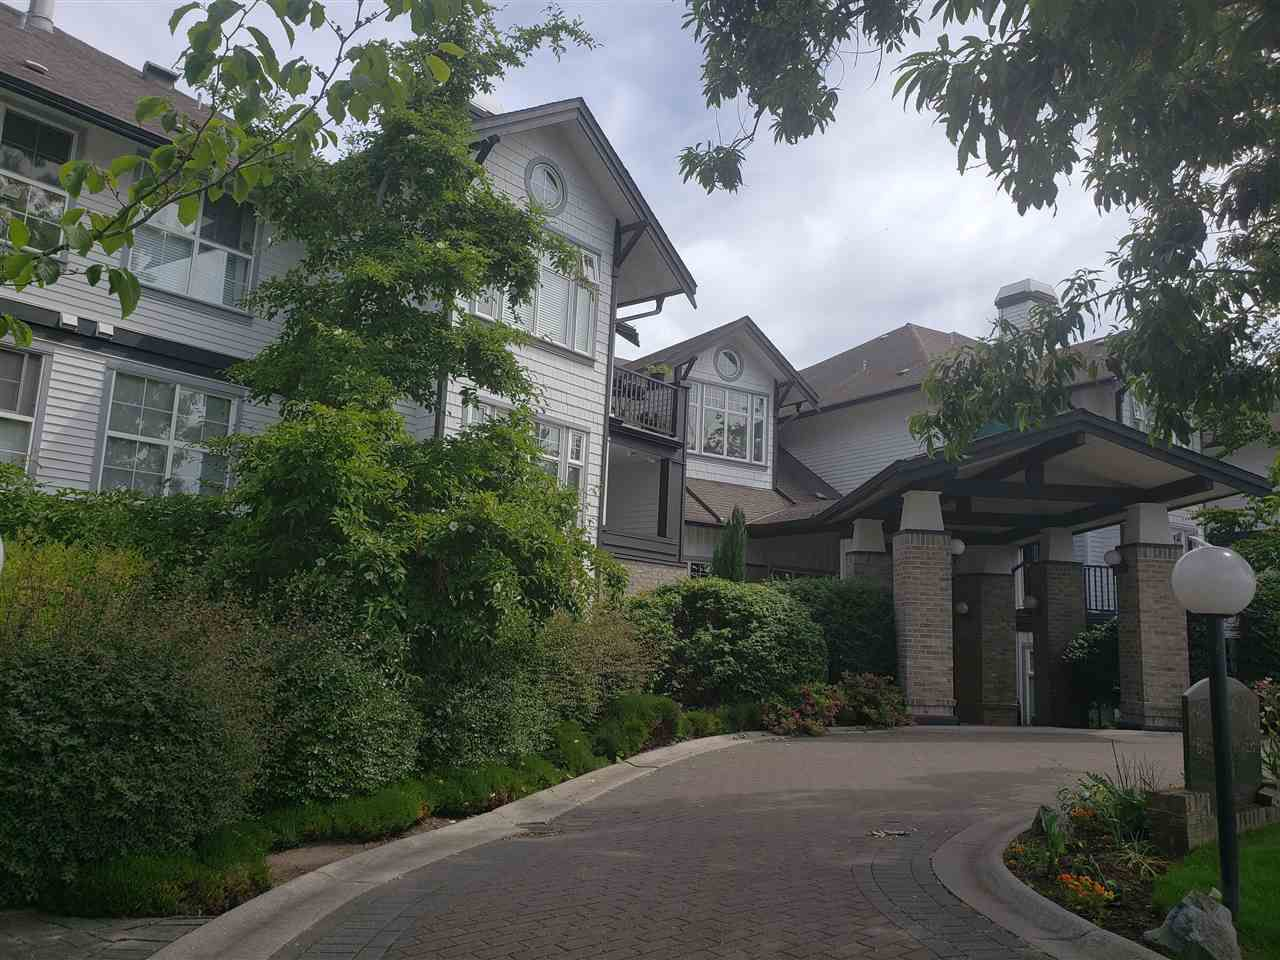 """Main Photo: 313 83 STAR Crescent in New Westminster: Queensborough Condo for sale in """"Residences by the River"""" : MLS®# R2379865"""